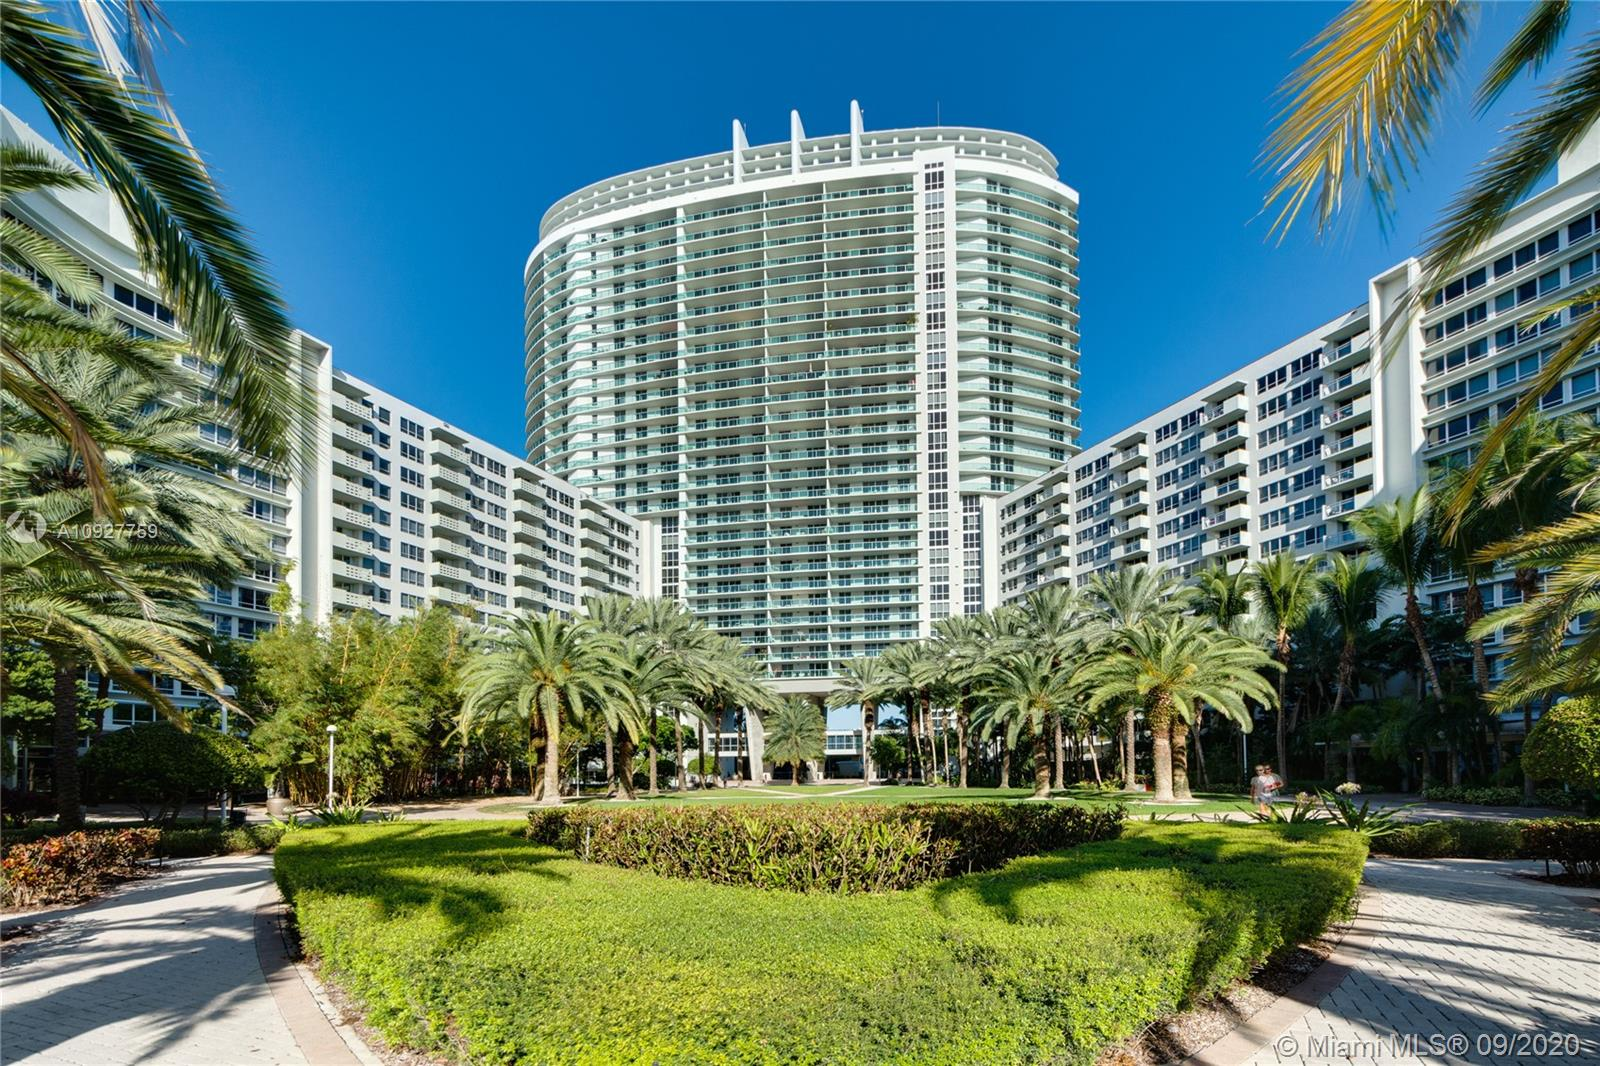 Flamingo South Beach #1536S - 1500 Bay Rd #1536S, Miami Beach, FL 33139